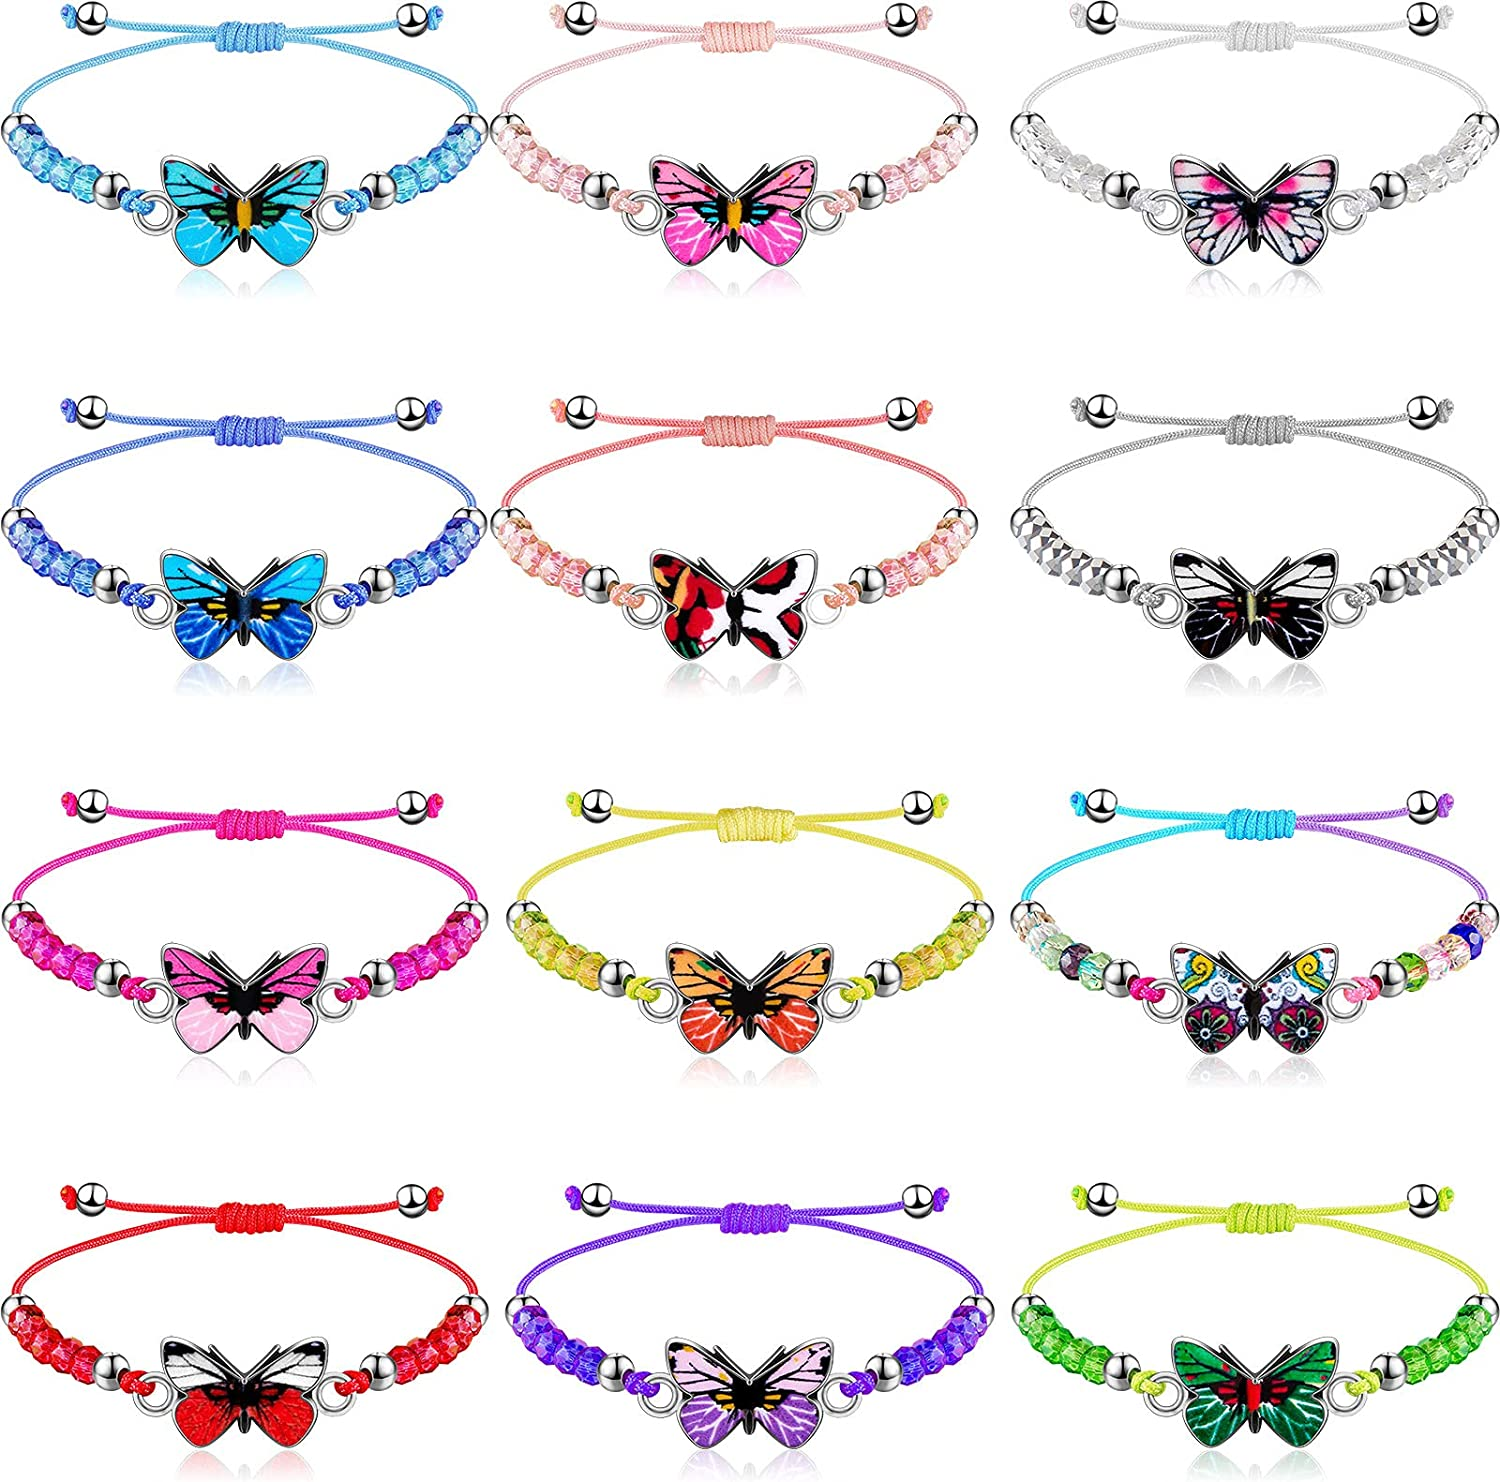 24 Pieces Butterfly Max 79% OFF Beads Crystal Bead Ranking TOP15 Bracelet Woven